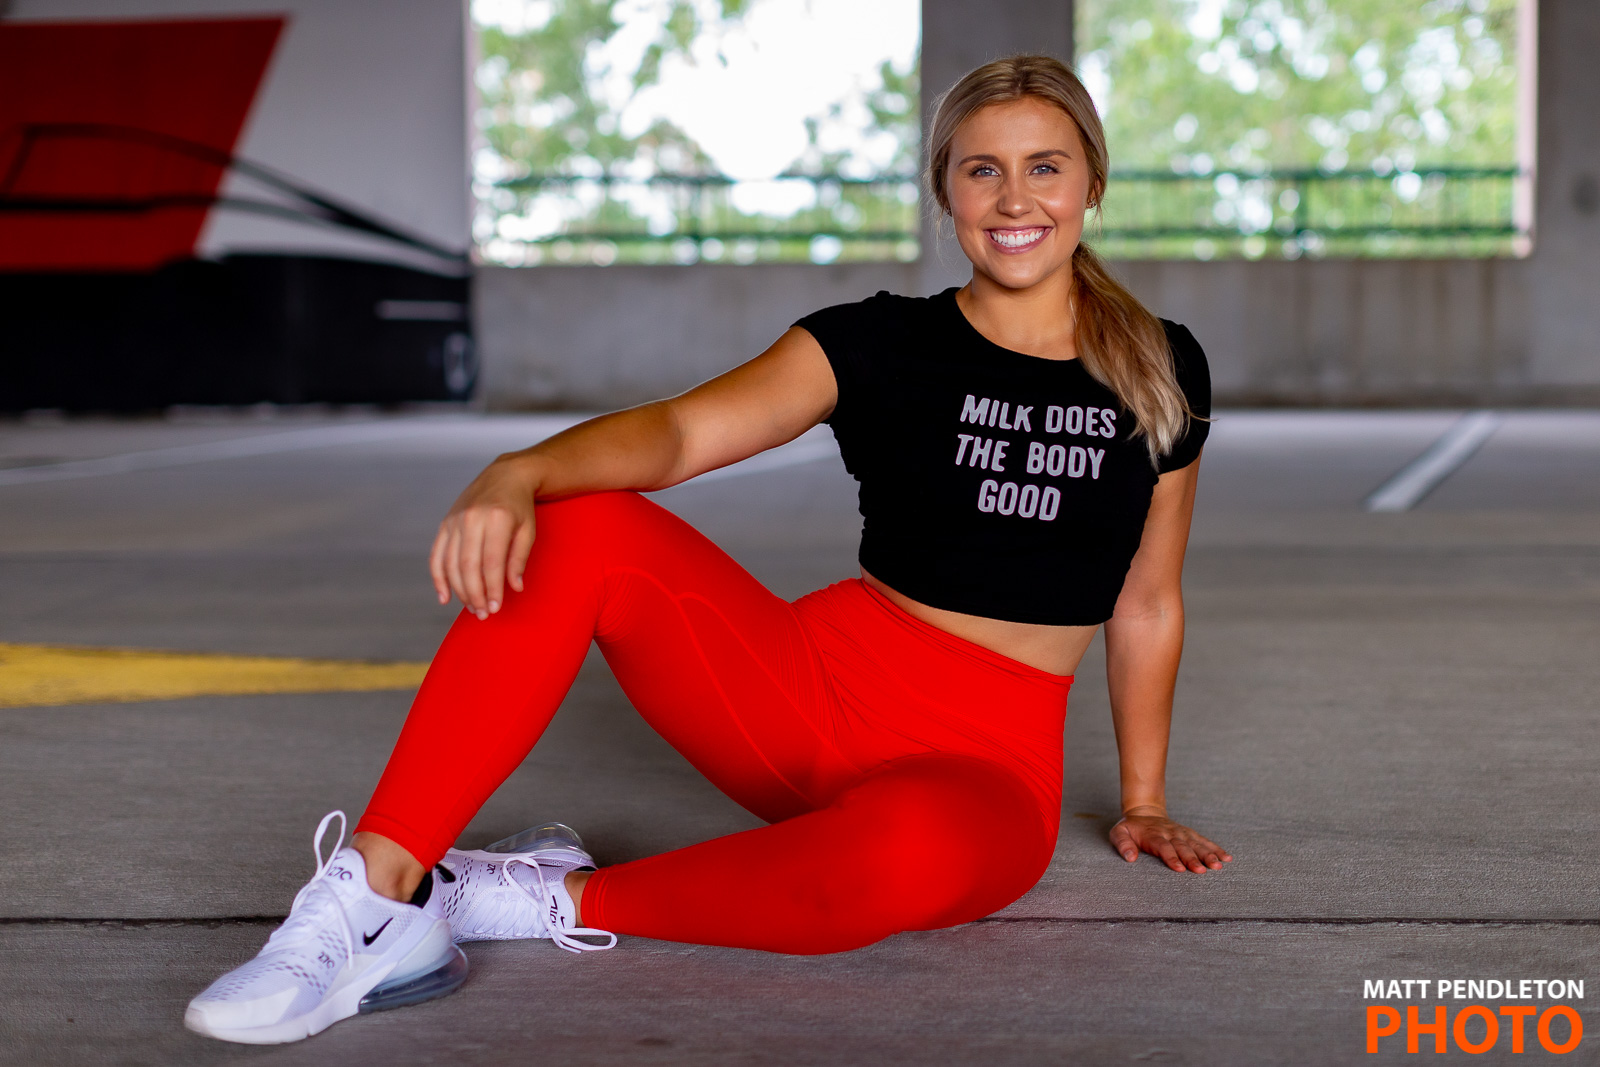 A blonde woman in a black shirt and red exercise pants poses for the camera